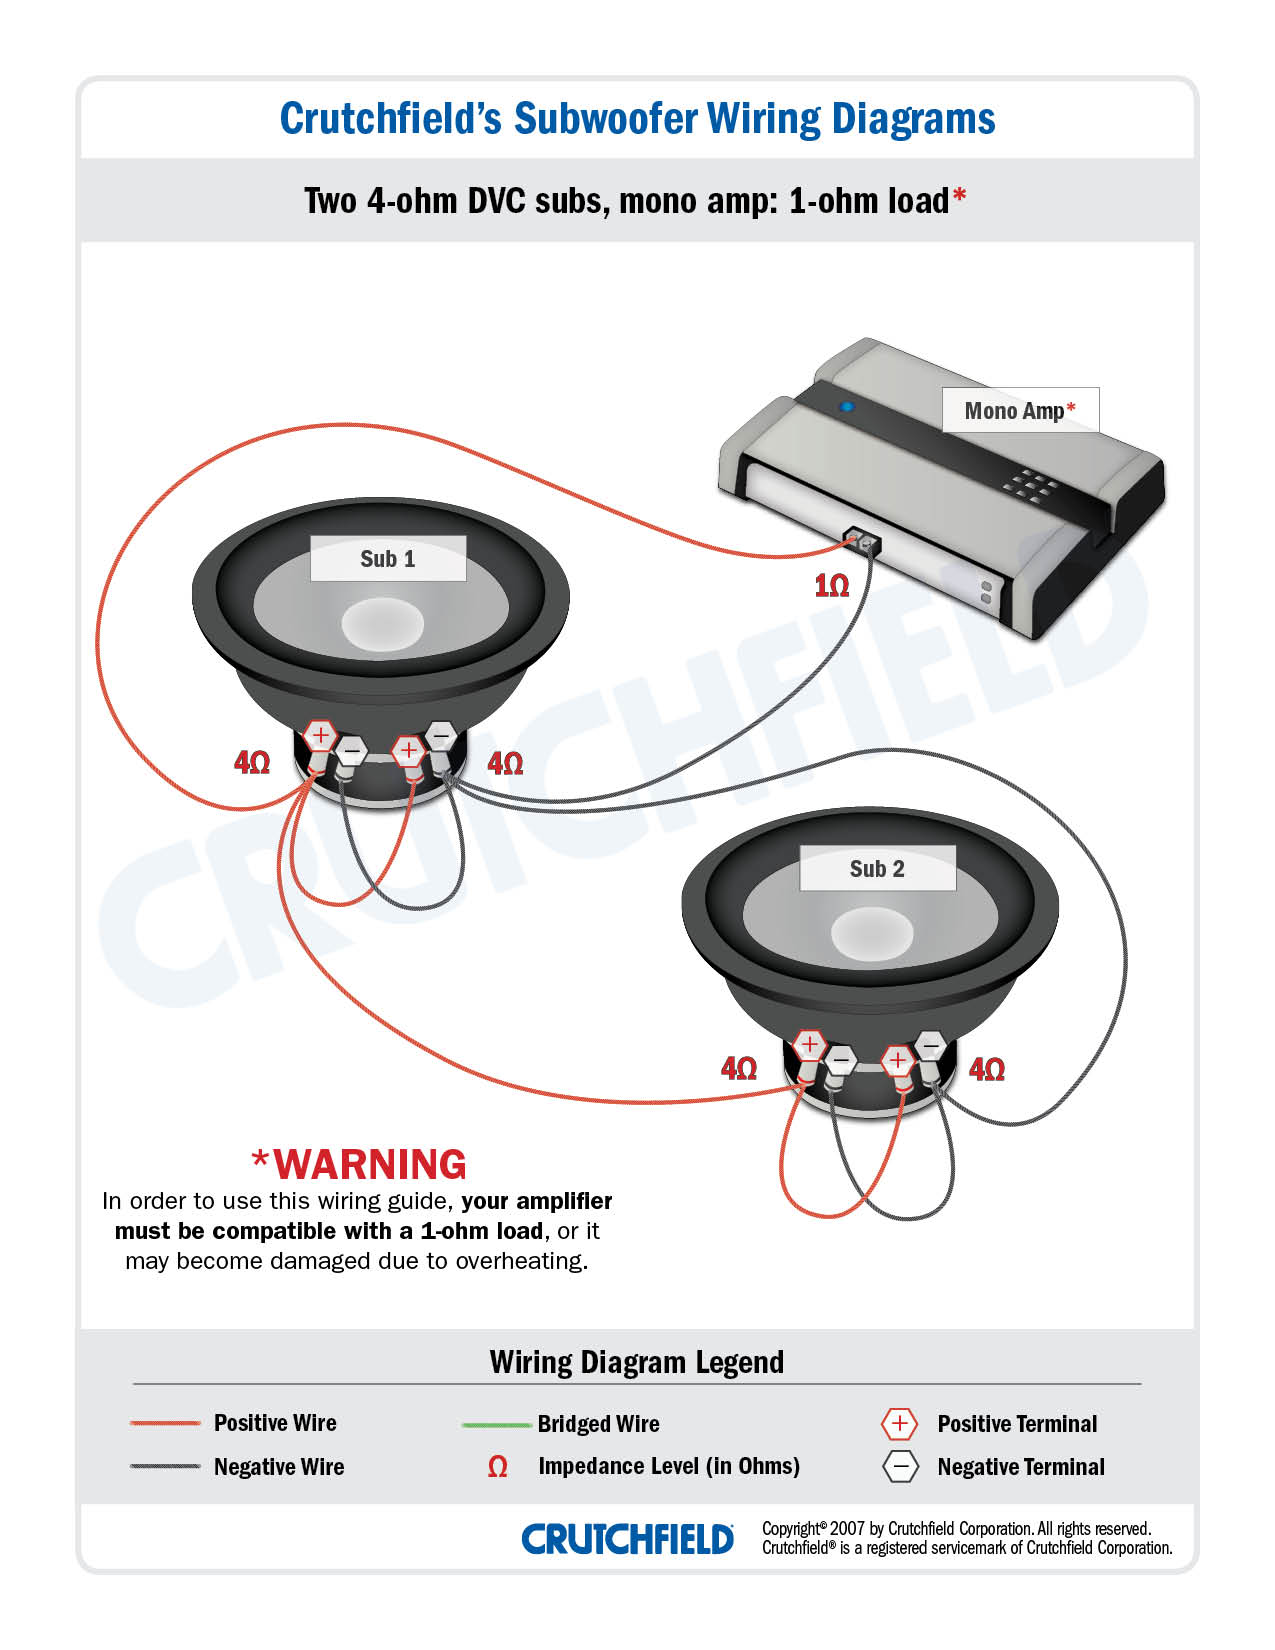 subwoofer wiring diagrams \u2014 how to wire your subs1956 Chevy 210 Pro Touring Along With 1965 Chevy Impala Wiring Diagram #16